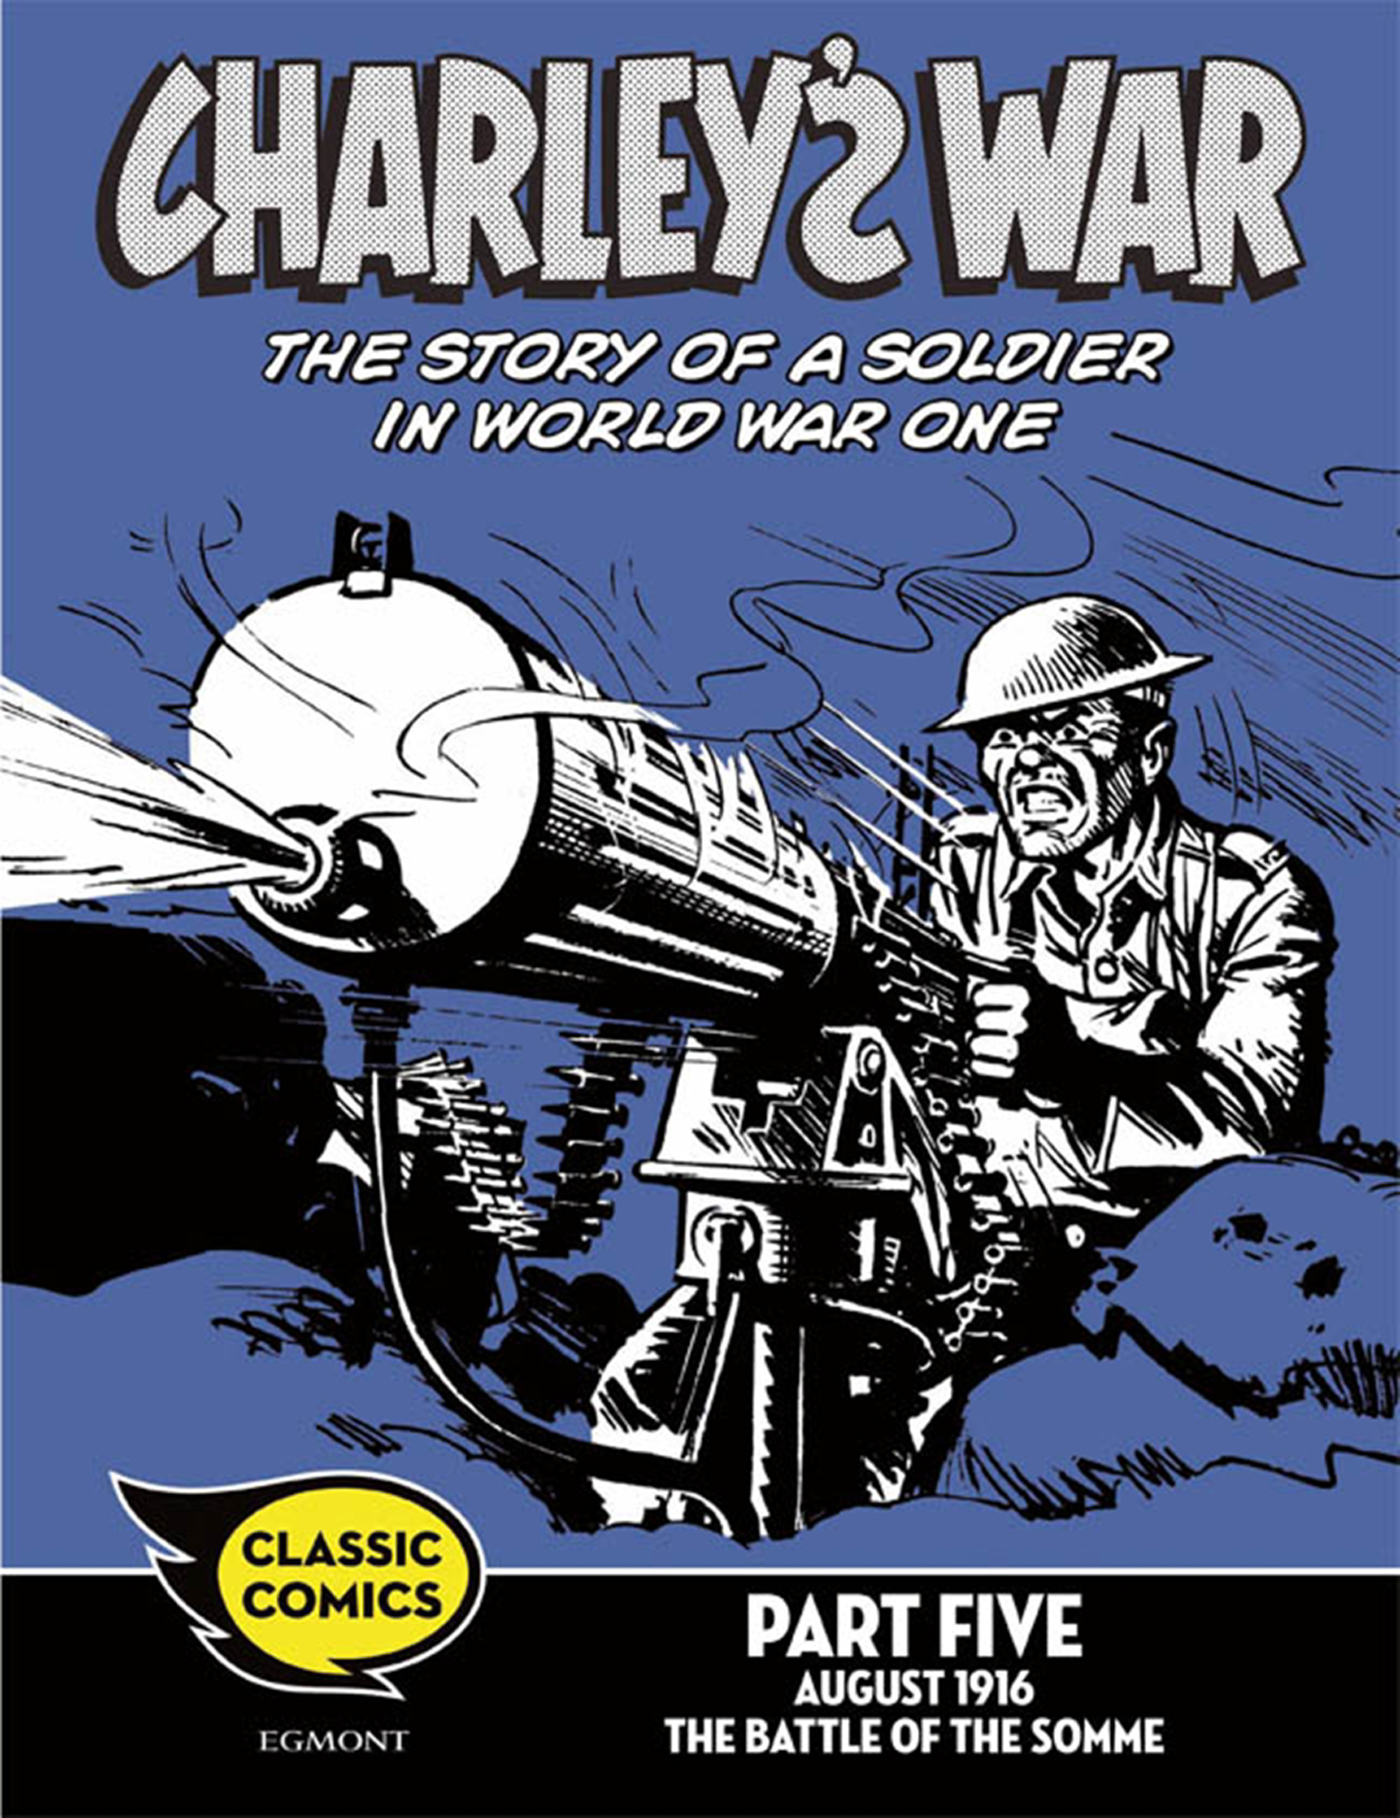 Charley's War Comic Part Five: August 1916 The Battle of the Somme